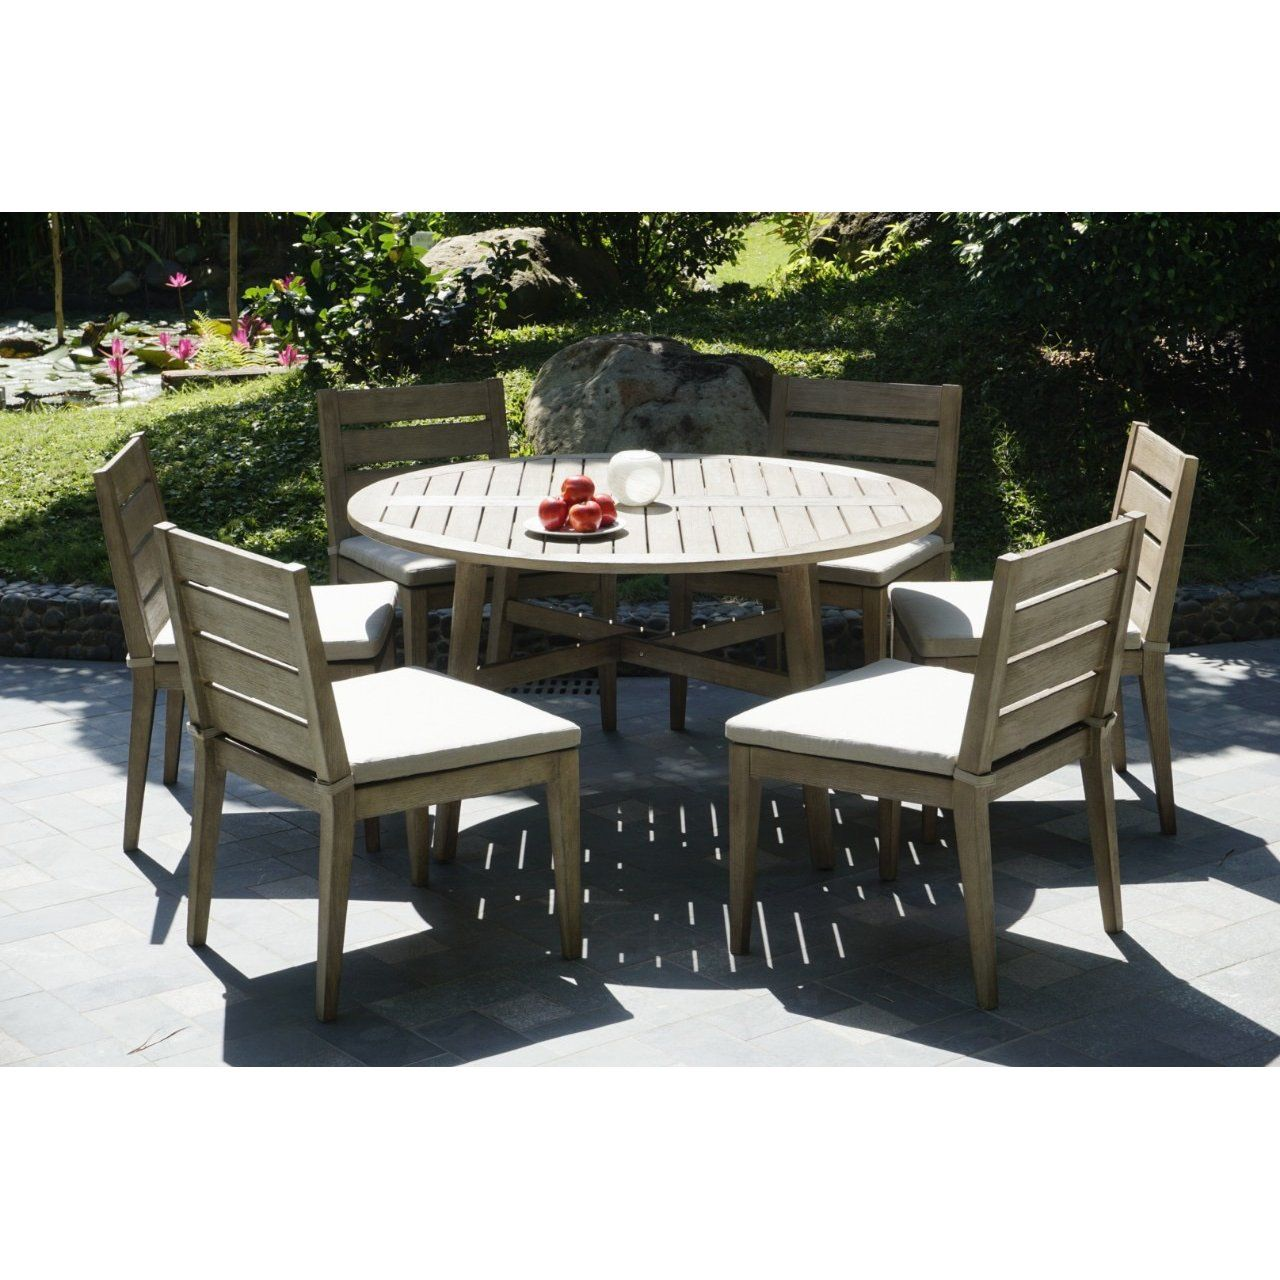 Weathered Gray Eucalyptus Wood Patio Dining Set Round Glades Patio Dining Set Outdoor Patio Table Patio Table Set